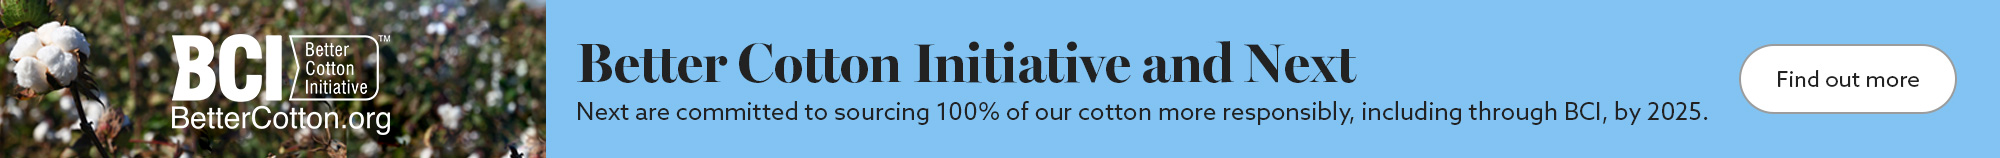 cotton-initiative-banner (1)